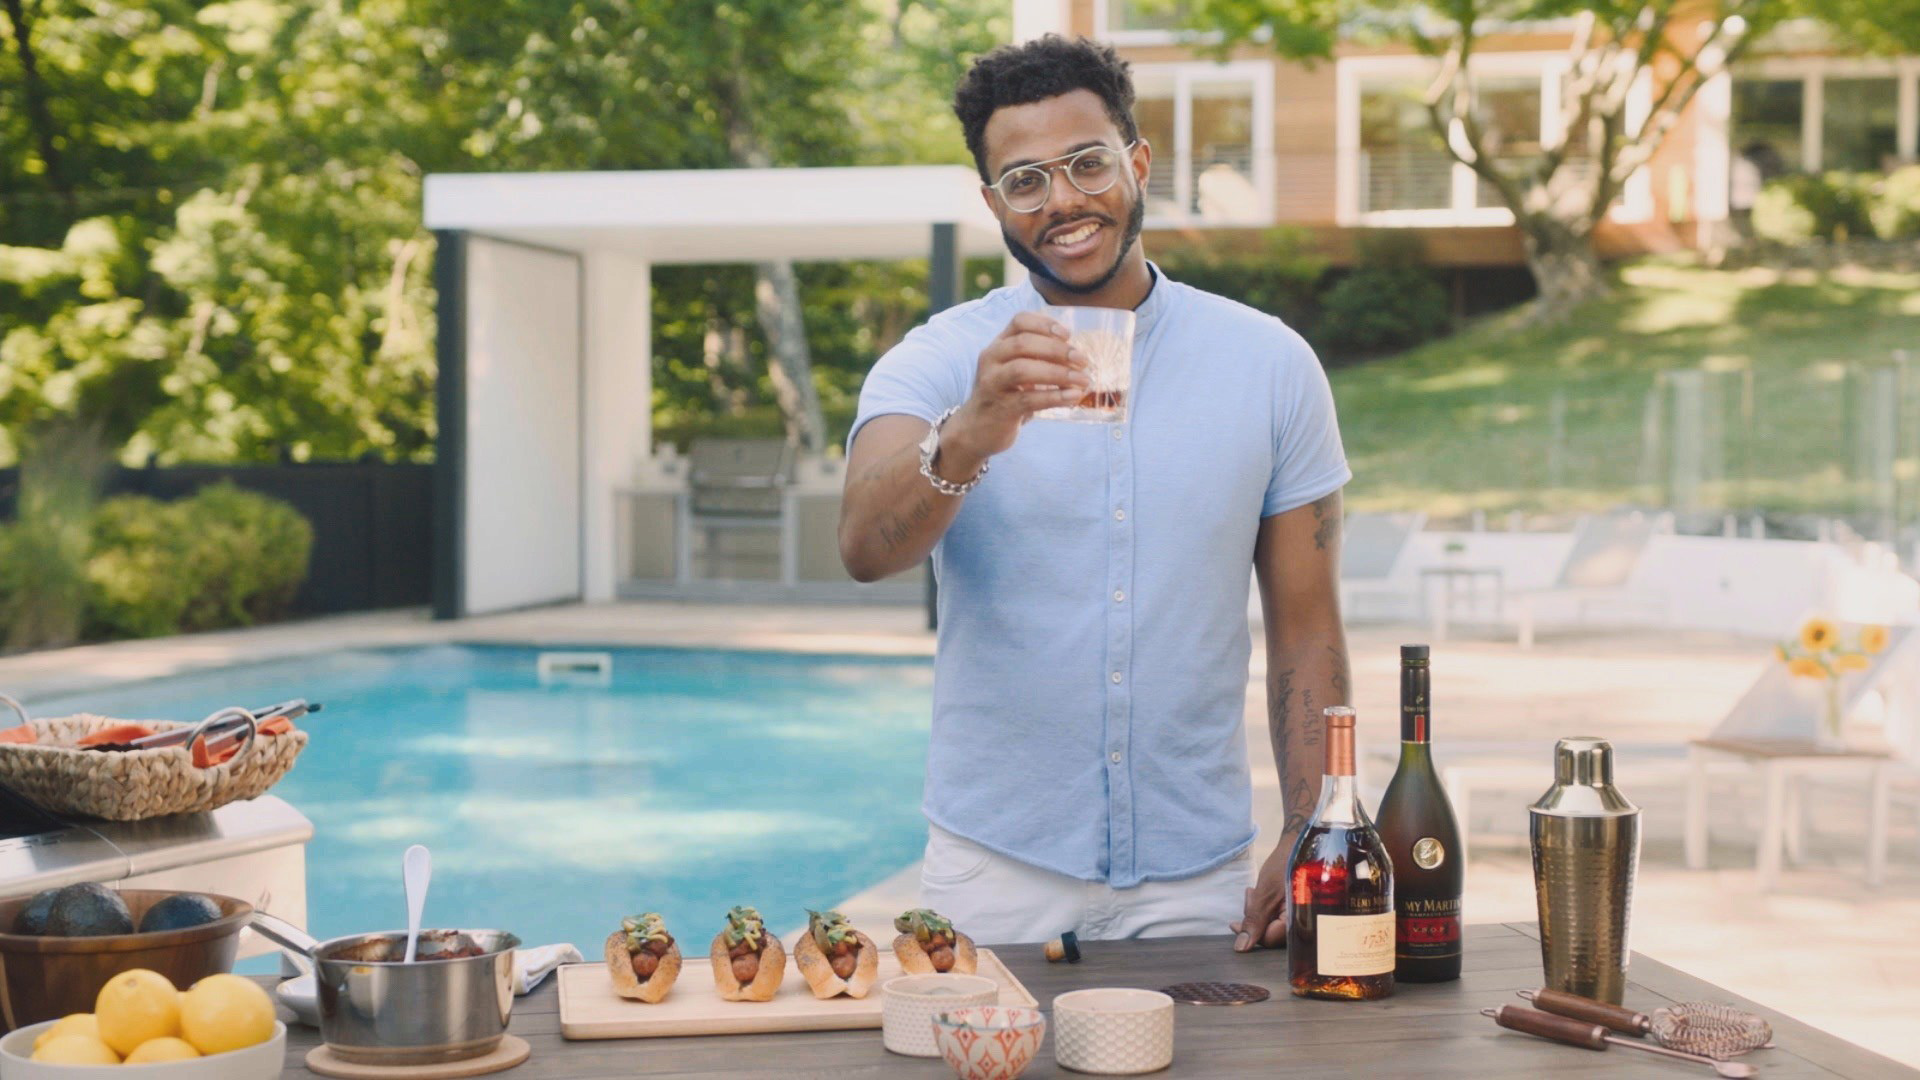 Remy Martin - Chef Kwame Onwuachi - Flavor by the Grill